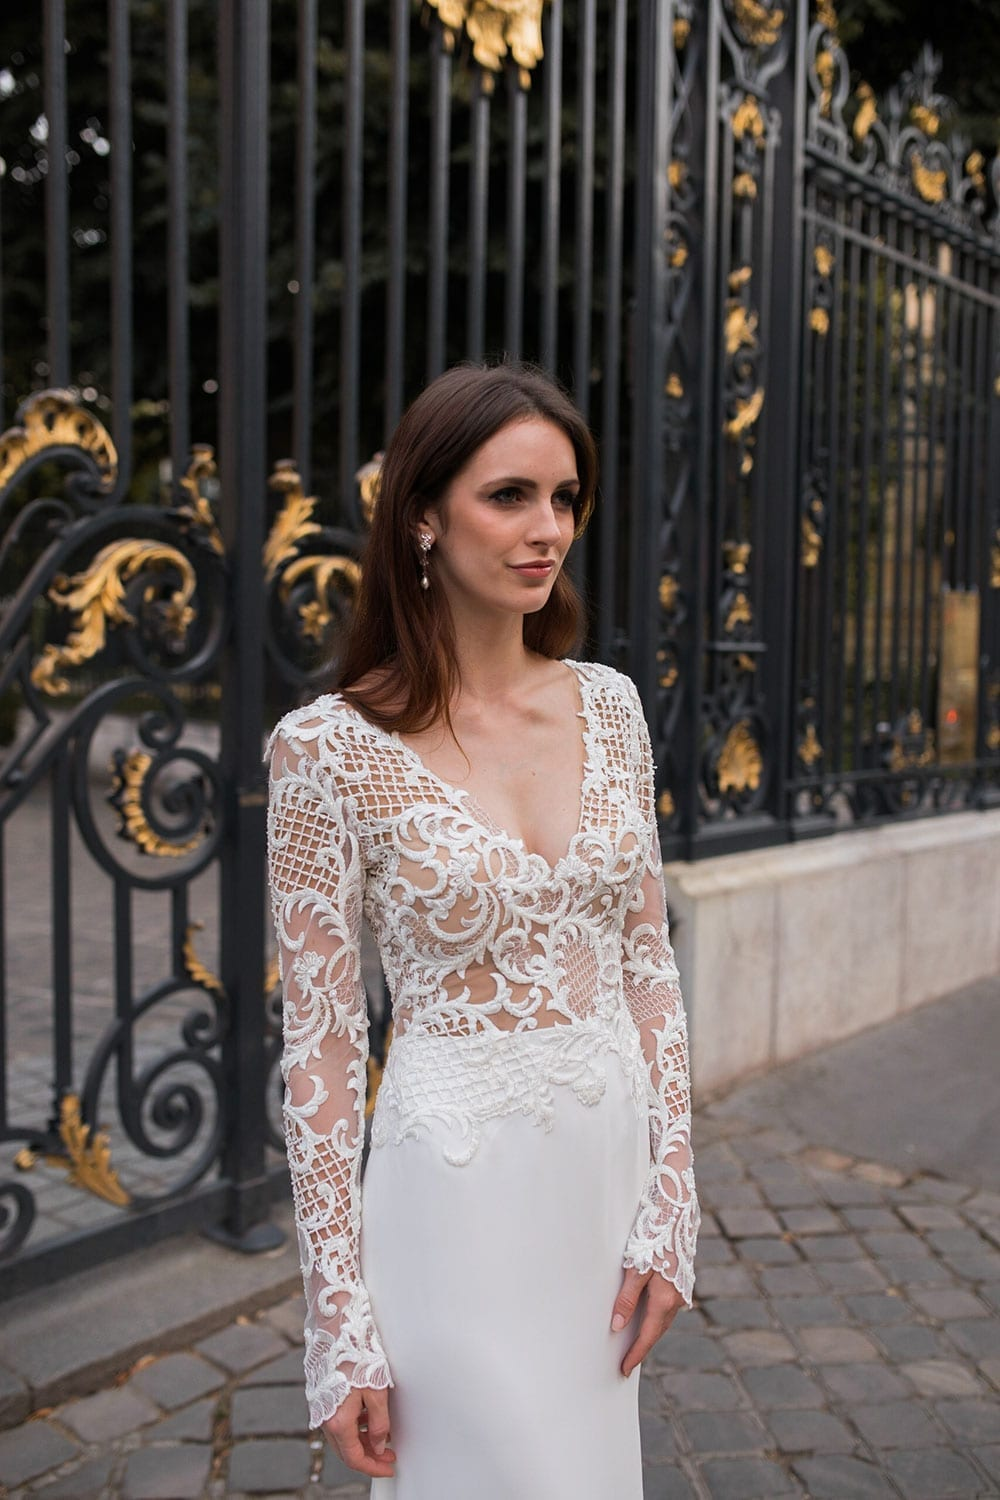 Model wearing Vinka Design Katrina Wedding Dress, a Stunning wedding dress sculptured with richly beaded lace . V neck gown with long fitted sleeves, a tailored skirt that fits softly over the hipline, and a beautiful train. Worn infront of ornate gate in Paris - front detail.